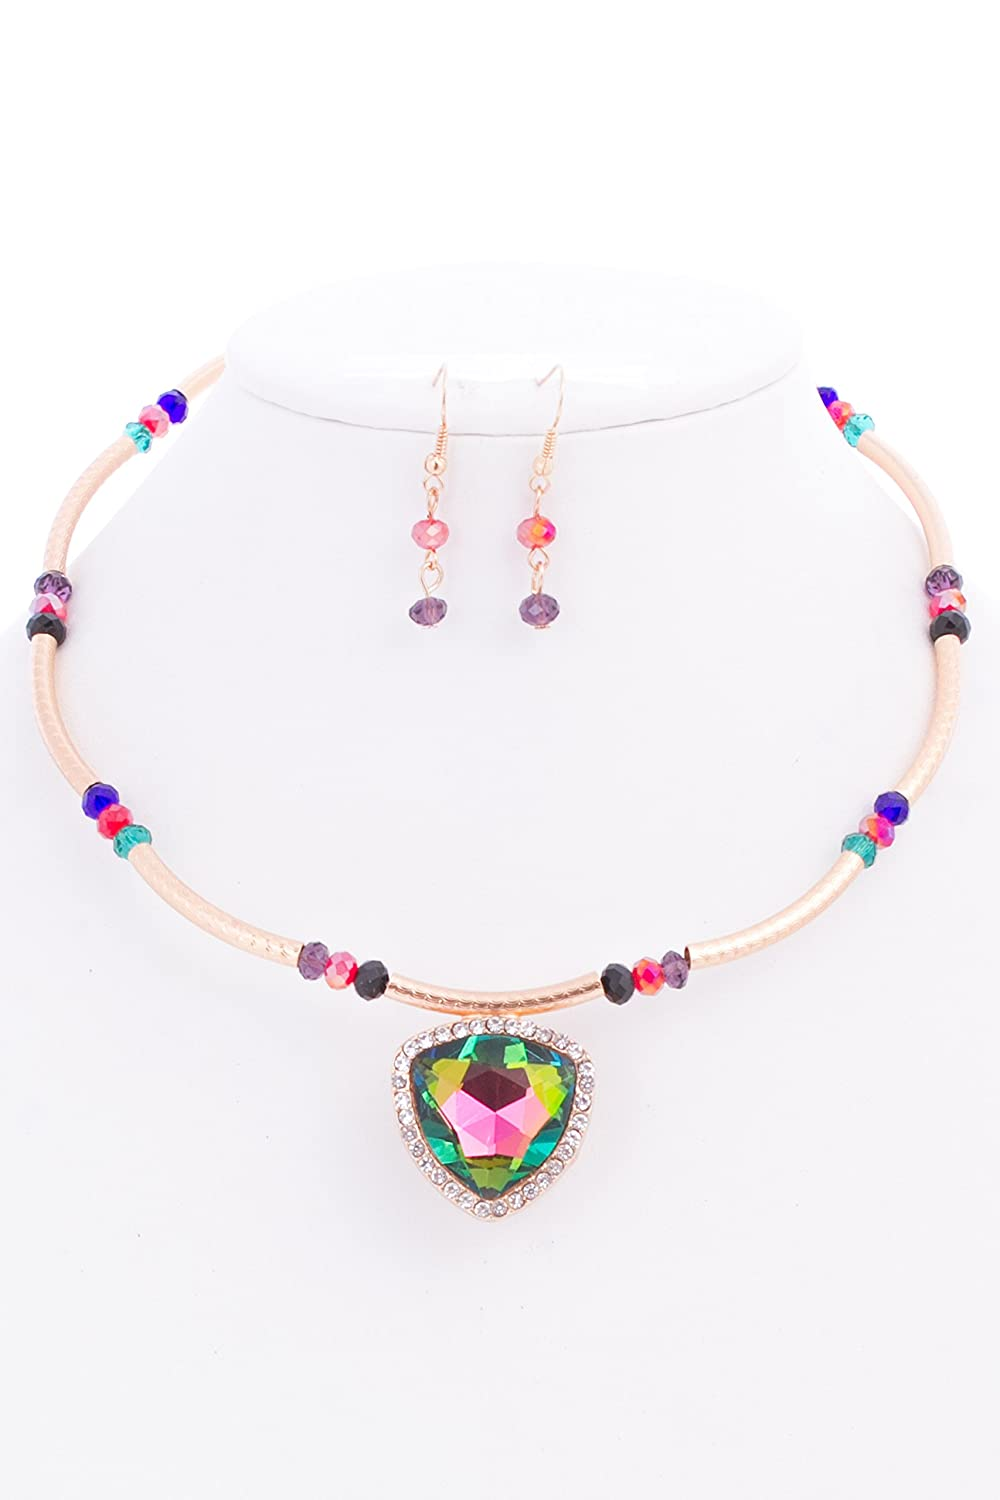 discount Peyton Glass Stone Choker Necklace and Earrings Set get discount